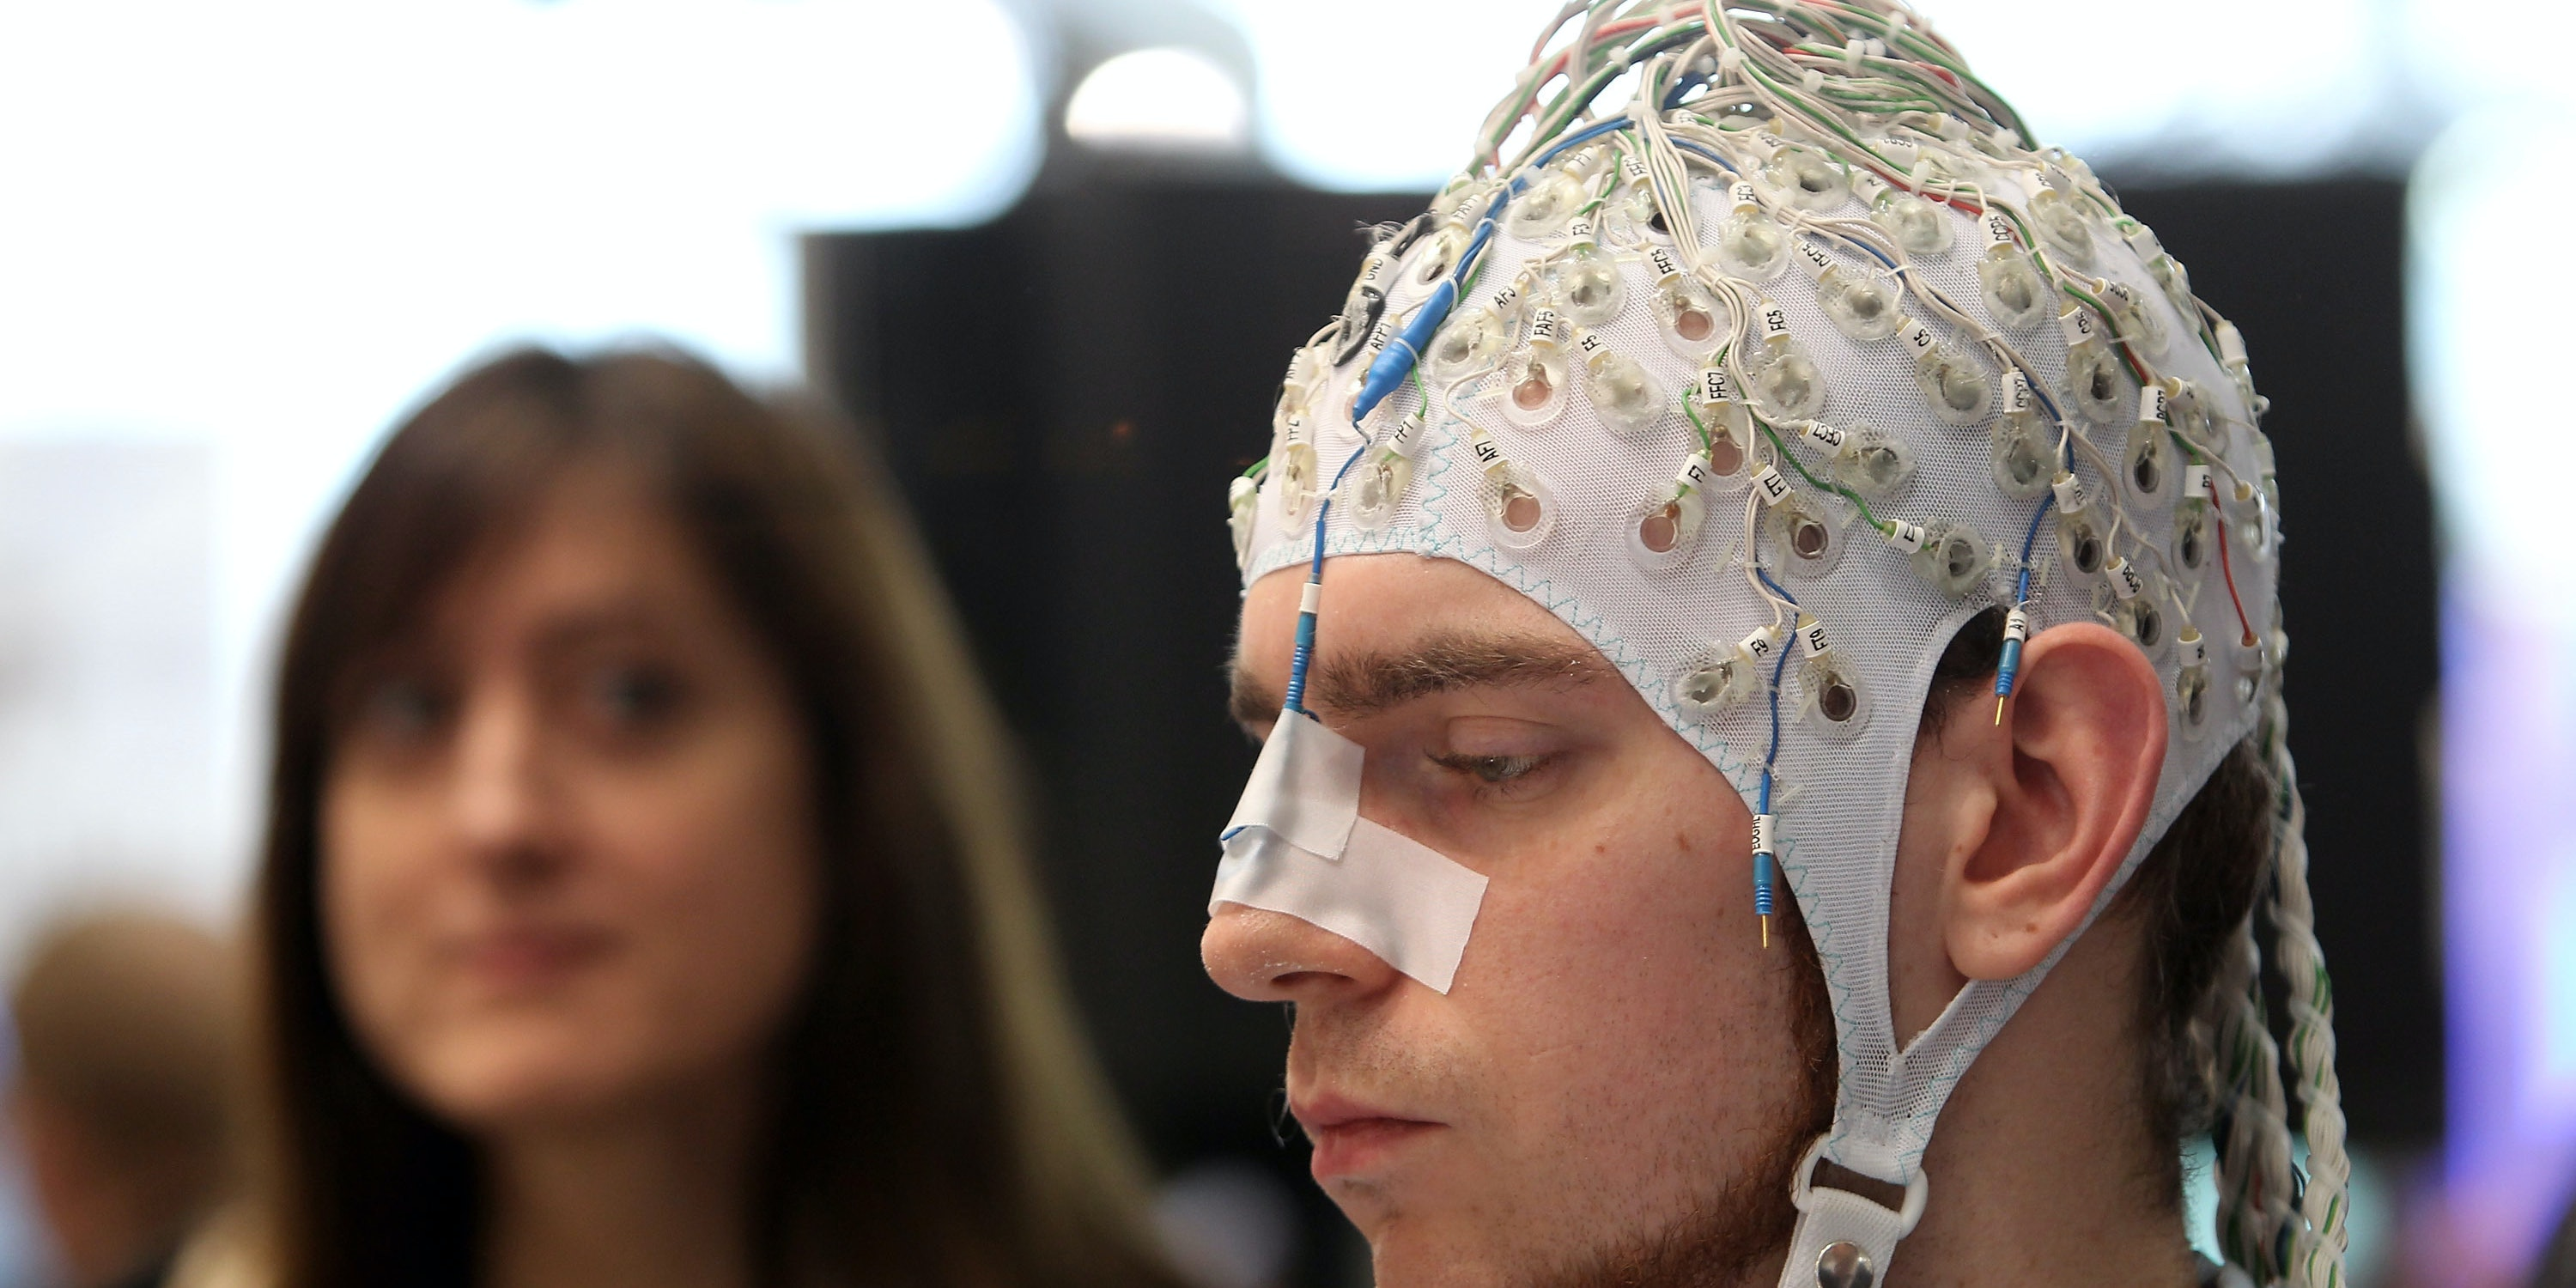 HANNOVER, GERMANY - MARCH 02:  A young woman watches a man, wearing an EEG brain scanning apparatus on his head, play a pinball game solely through willing the paddles to react with his brain at the Berlin Brain Computer Interface research consortium stand at the CeBIT Technology Fair on March 2, 2010 in Hannover, Germany. CeBIT will be open to the public from March 2 through March 6.  (Photo by Sean Gallup/Getty Images)